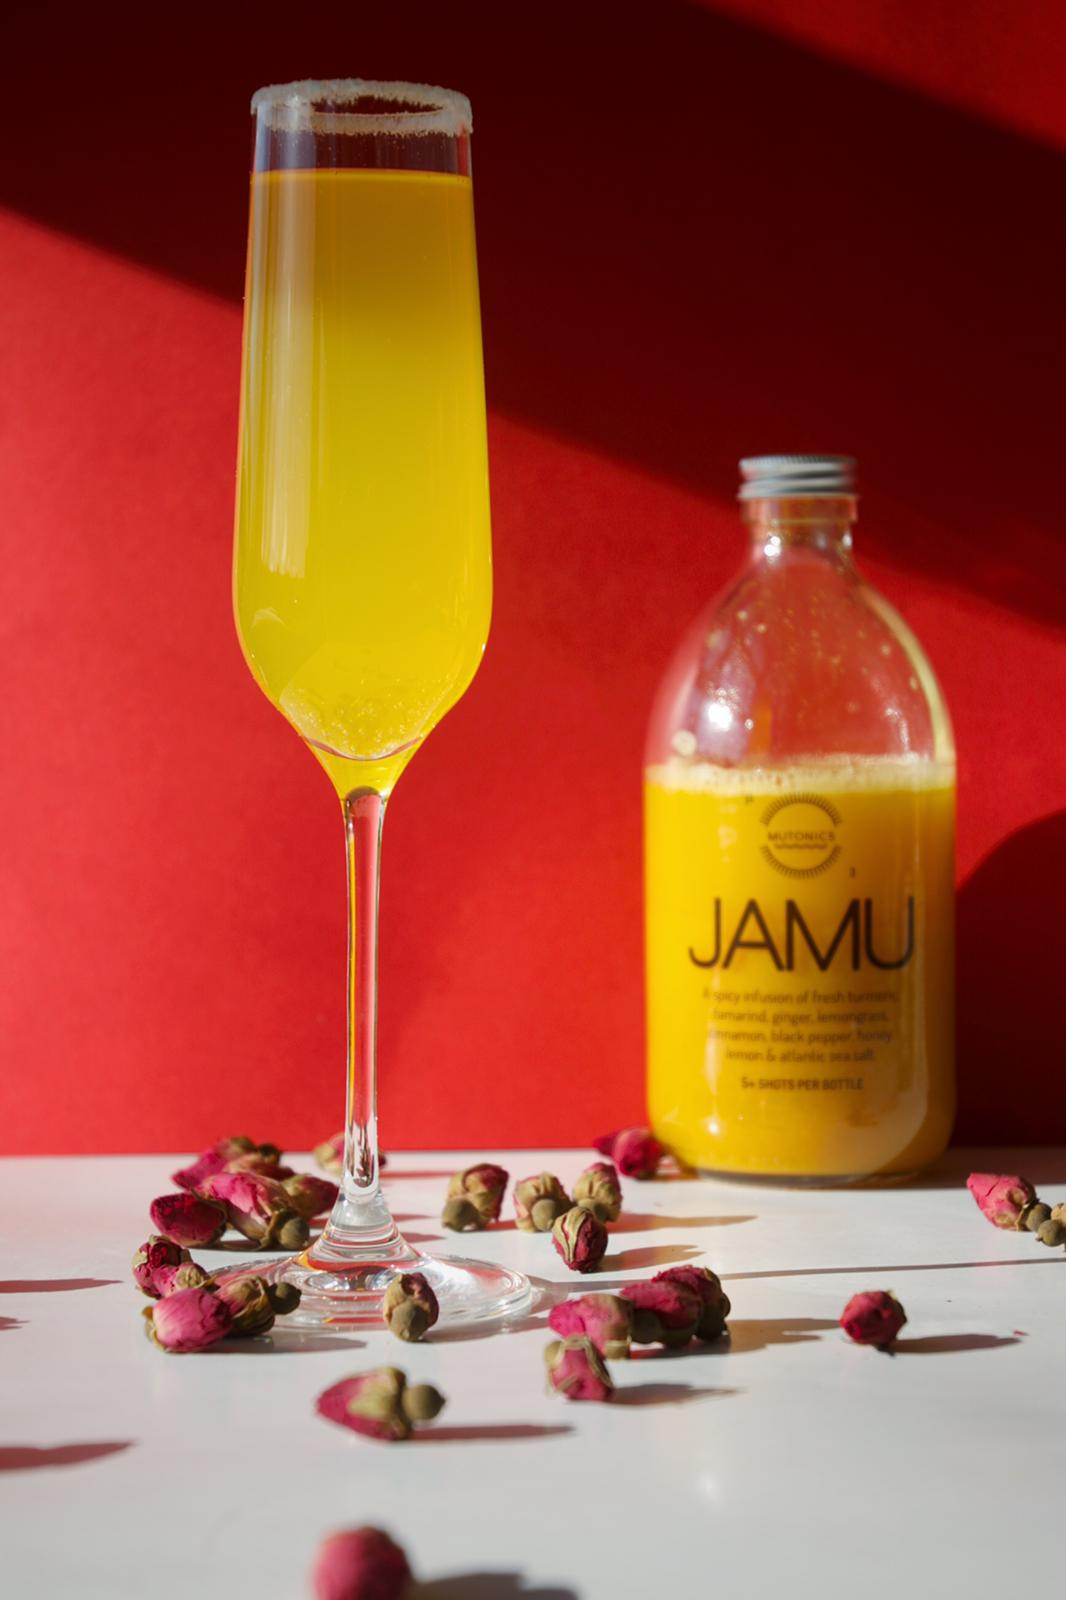 THE JAMUMOSA -